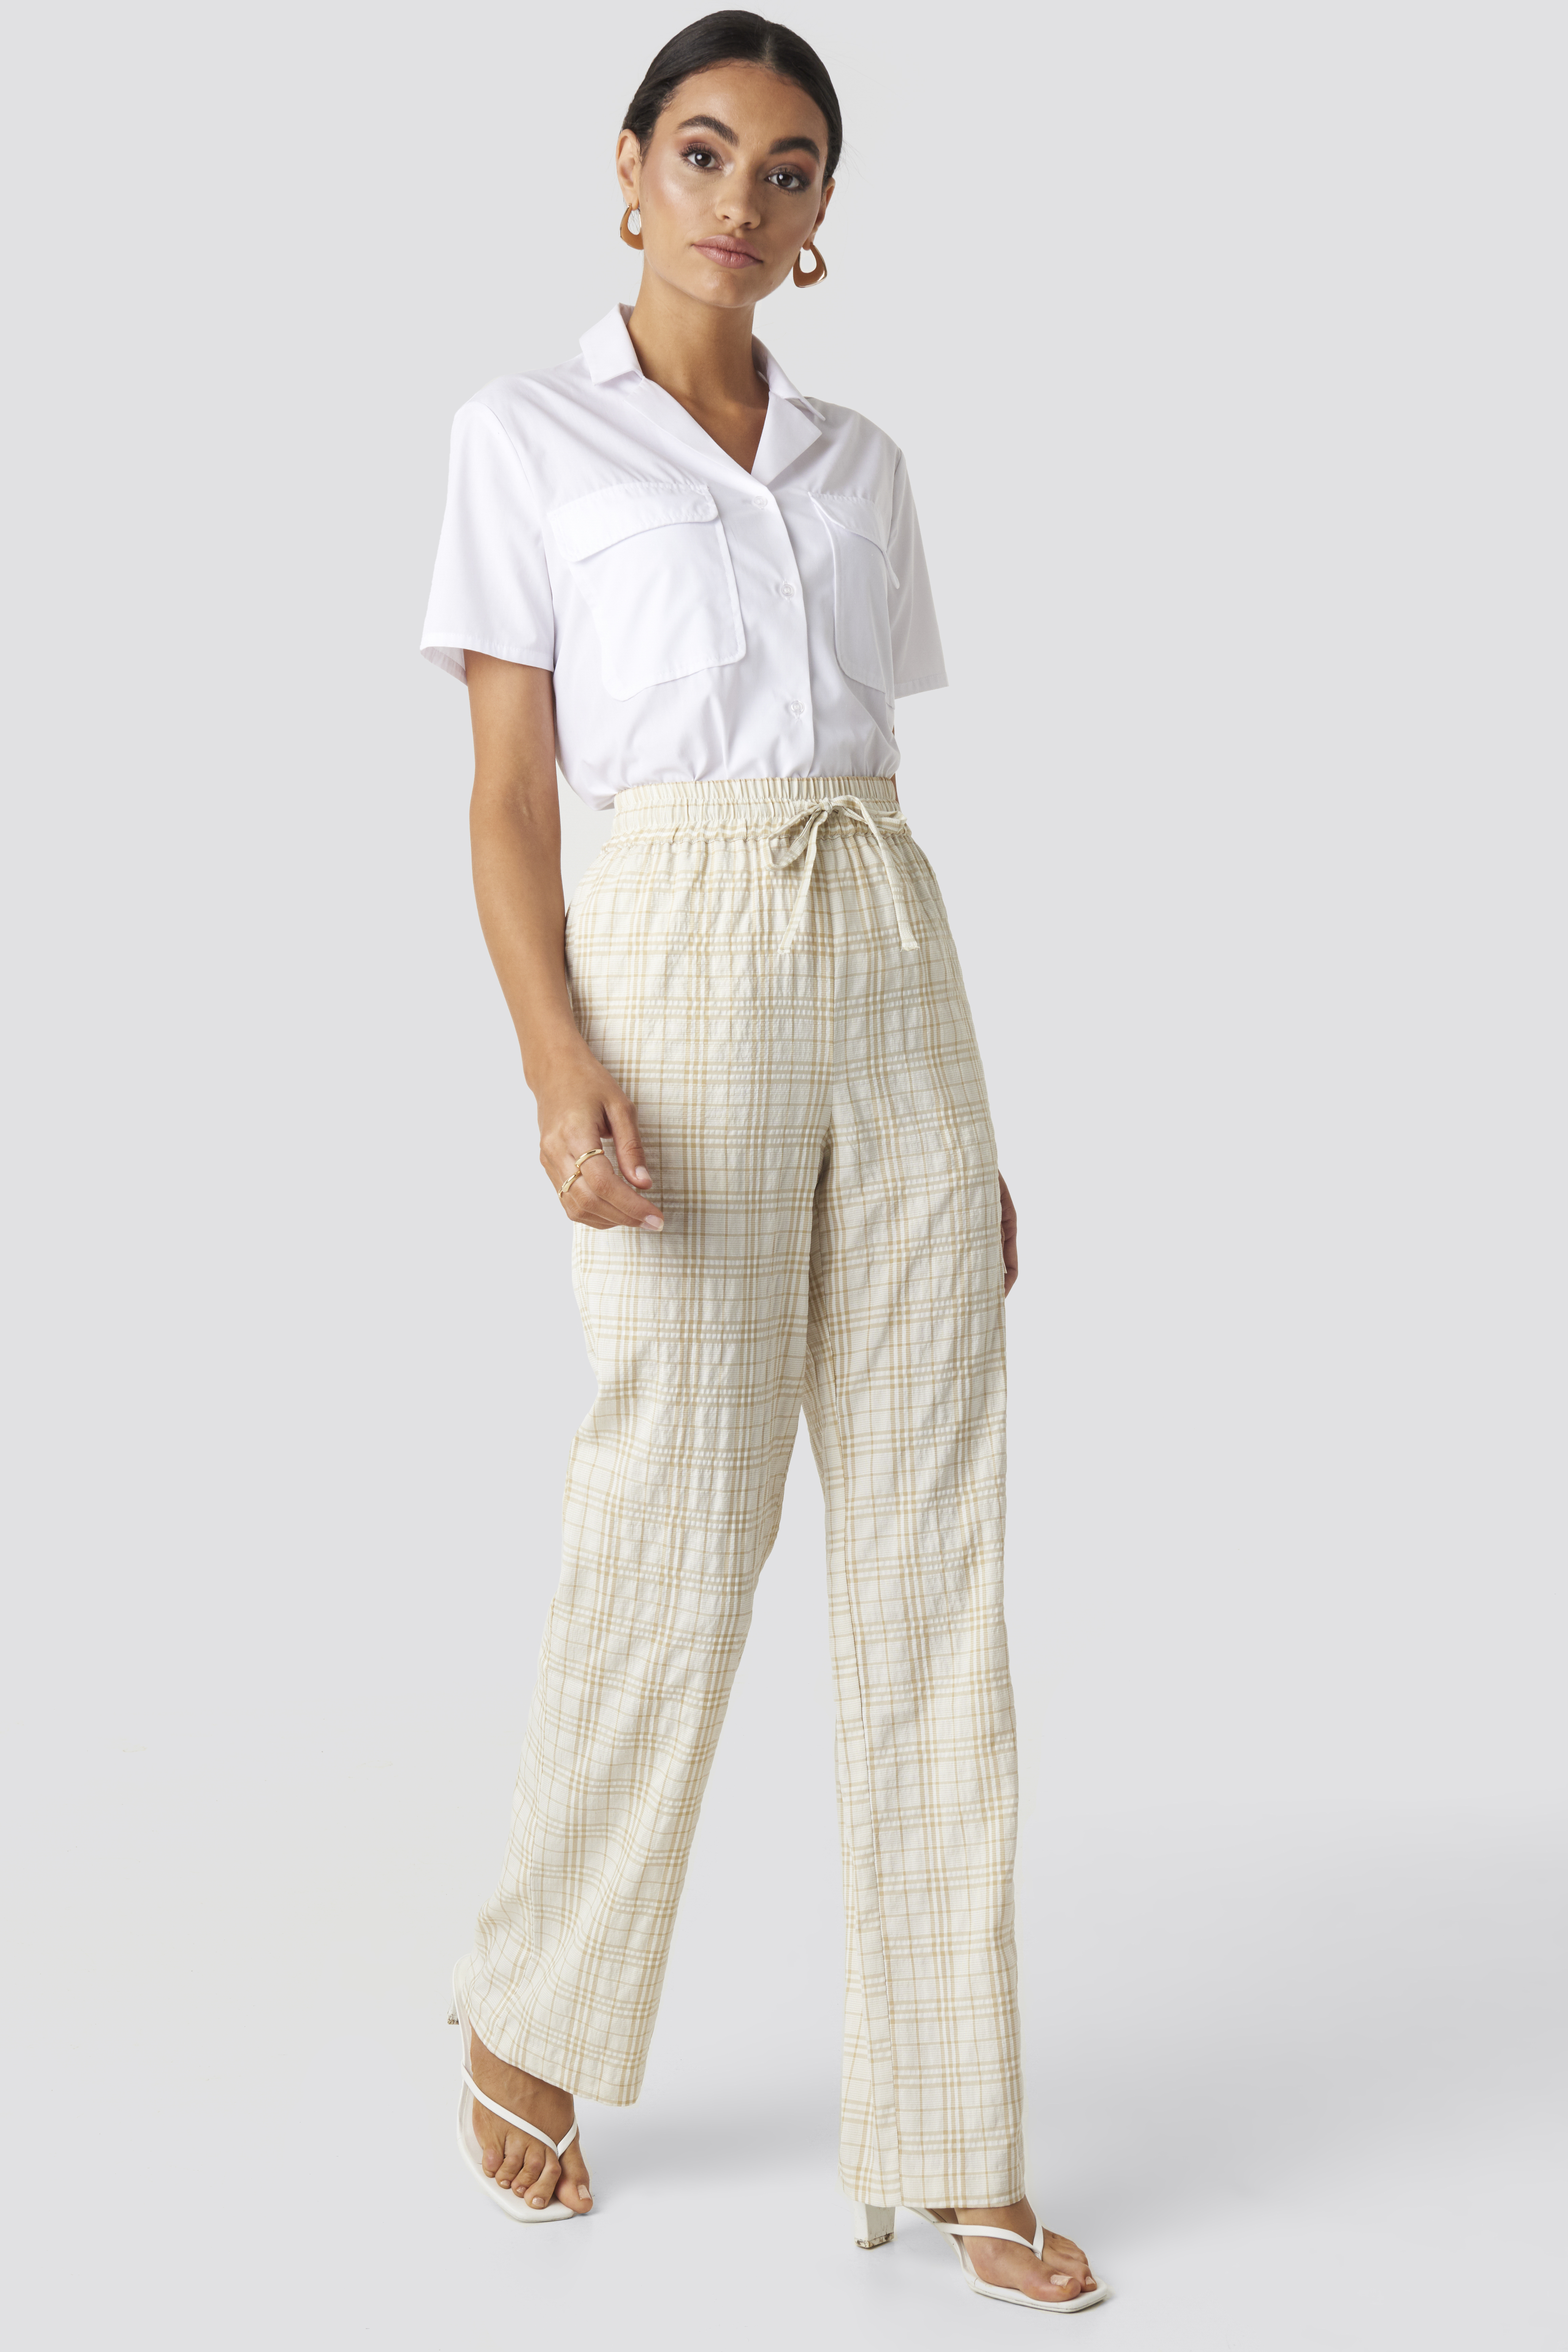 Structured Checkered Relaxed Trousers Beige by Nakdclassic